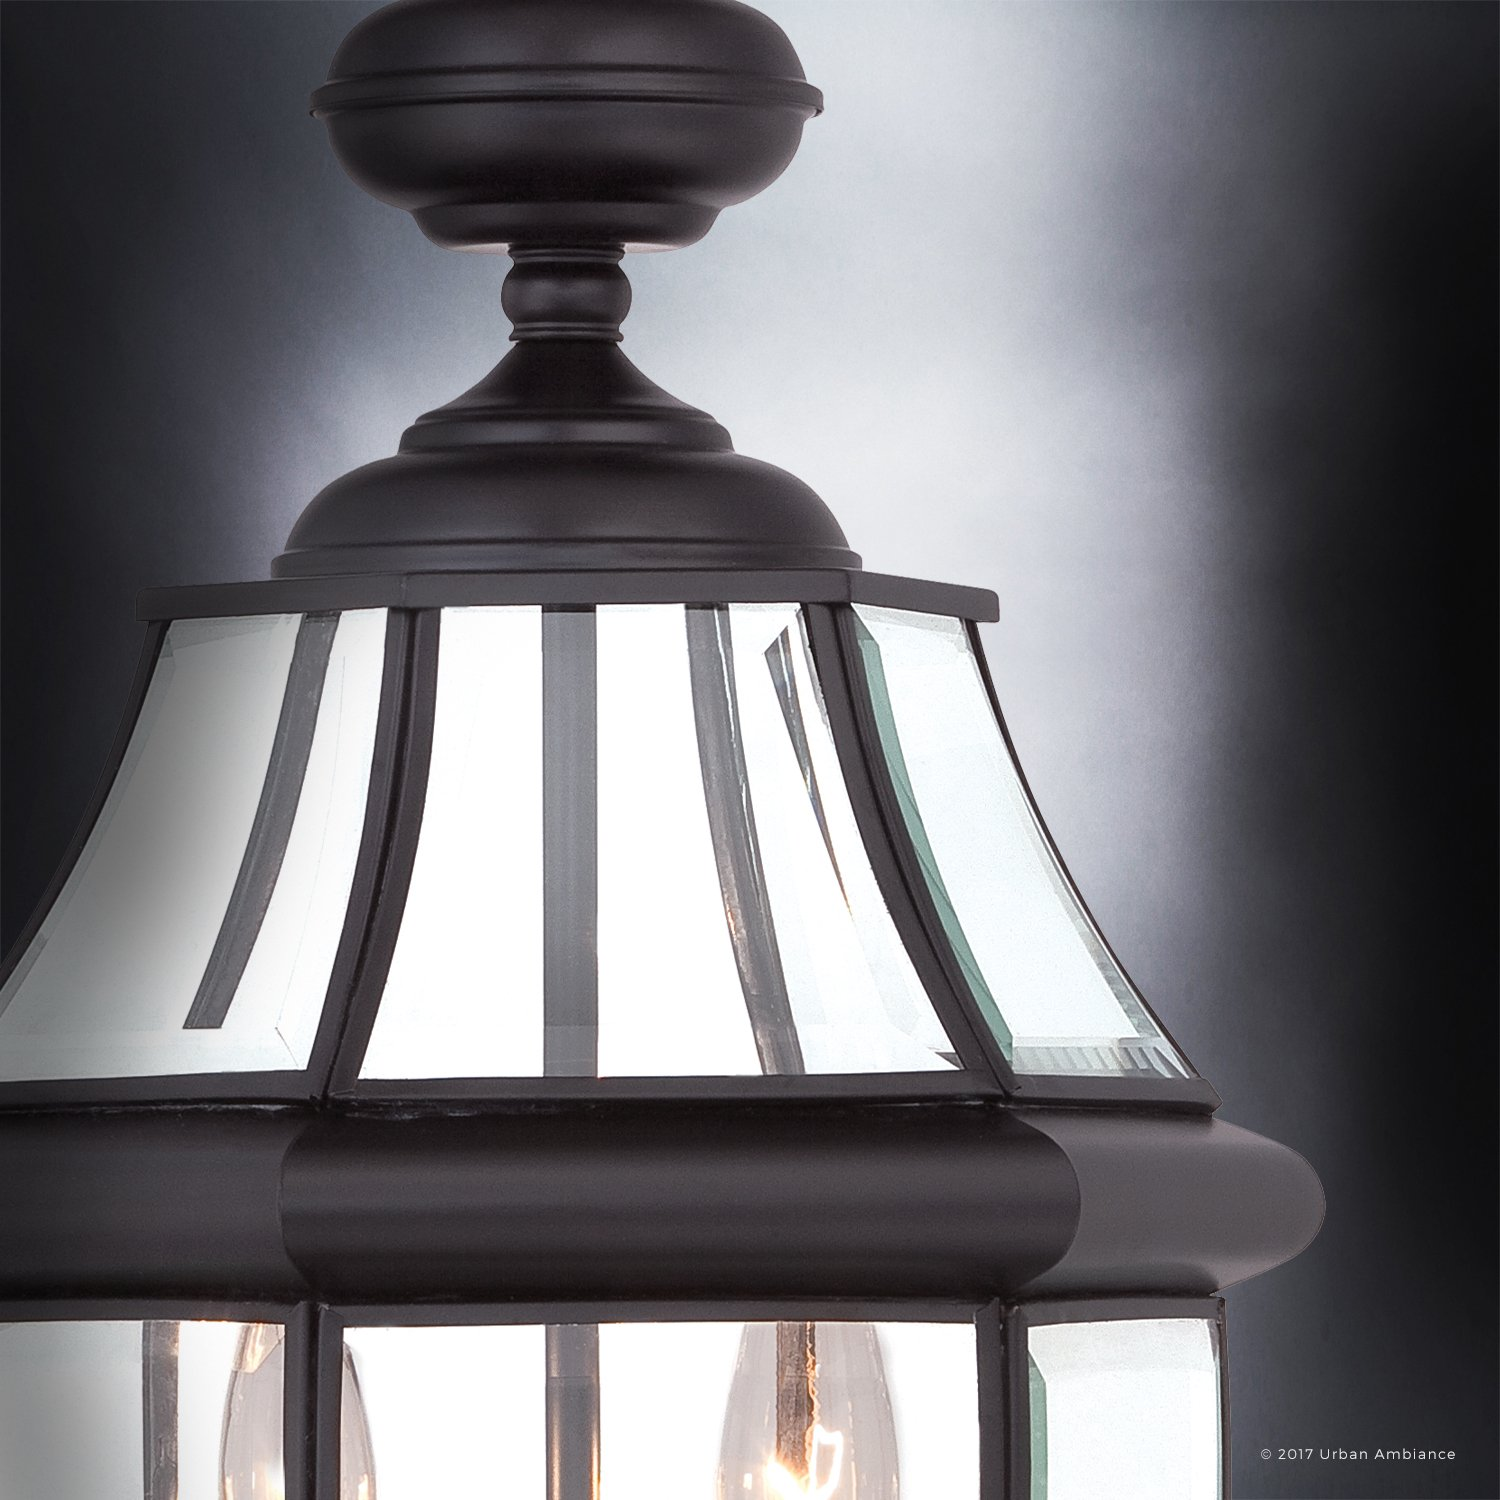 Luxury Colonial Outdoor Post Light, Large Size: 21''H x 11''W, with Tudor Style Elements, Versatile Design, High-End Black Silk Finish and Beveled Glass, UQL1148 by Urban Ambiance by Urban Ambiance (Image #5)